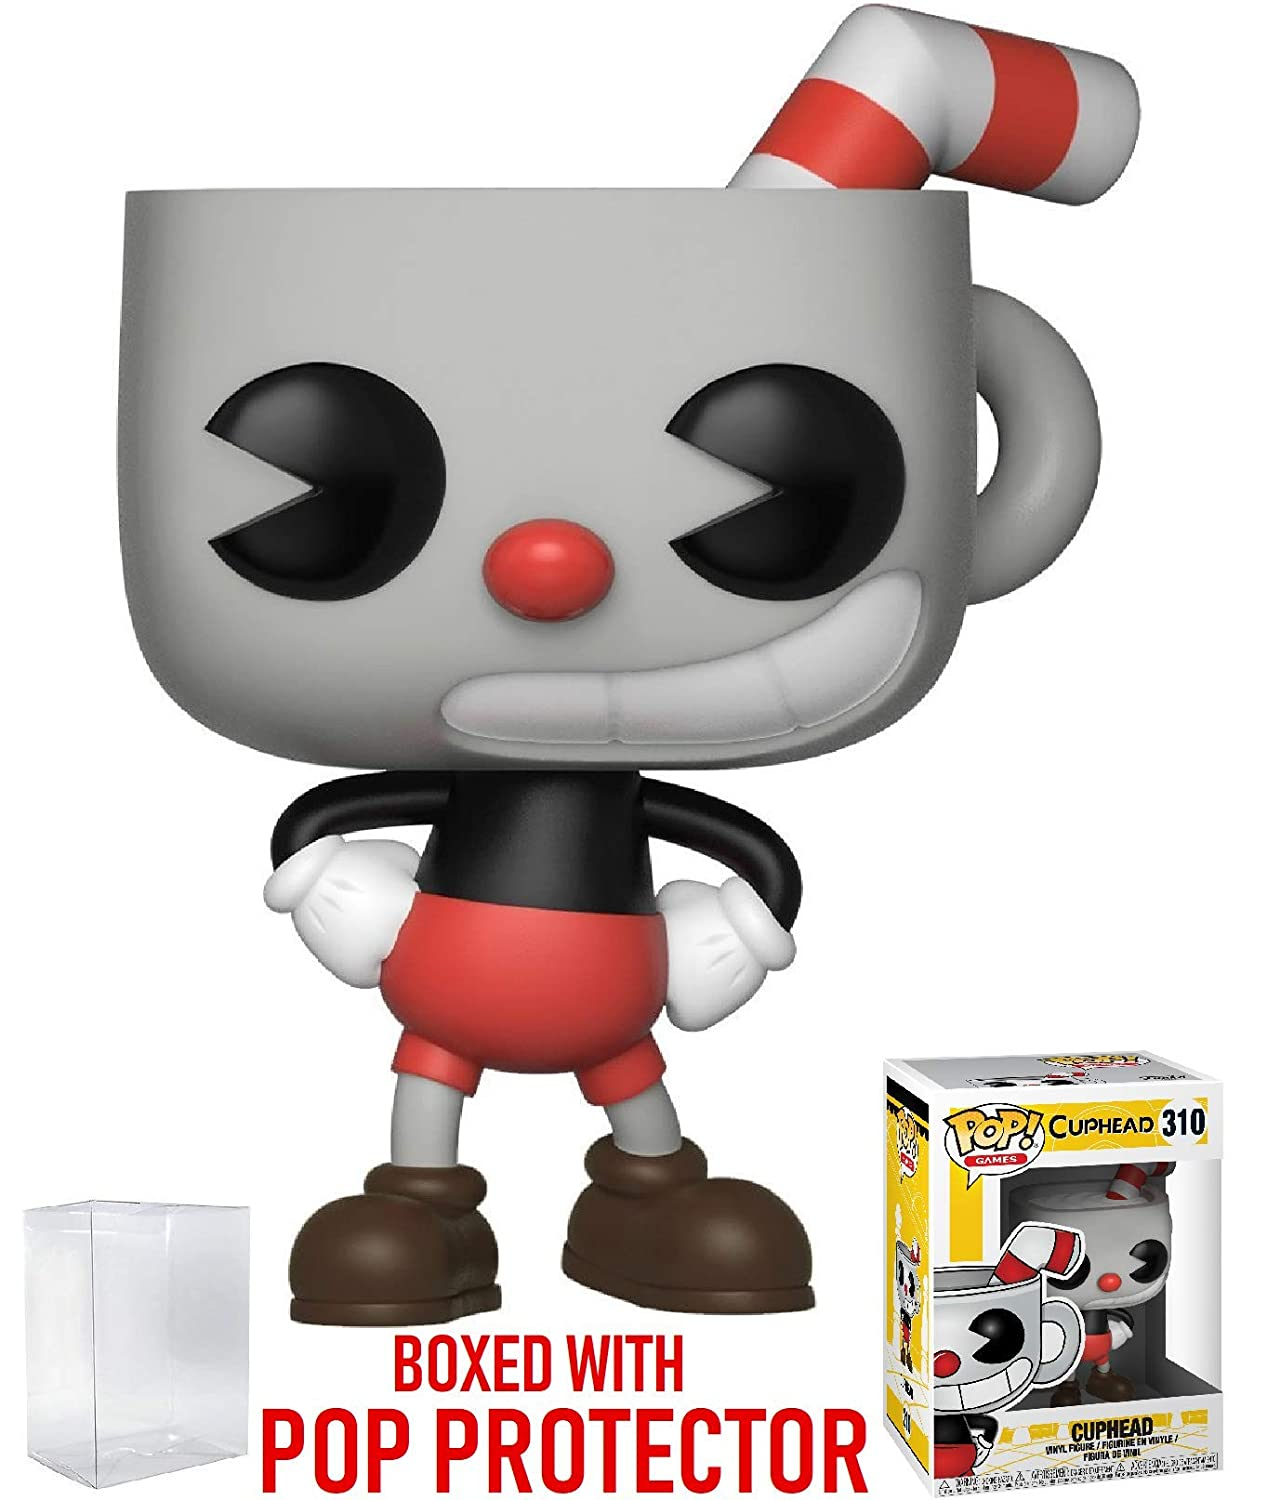 Games: Cuphead Funko Pop Cuphead Vinyl Figure Bundled with Pop Box Protector Case